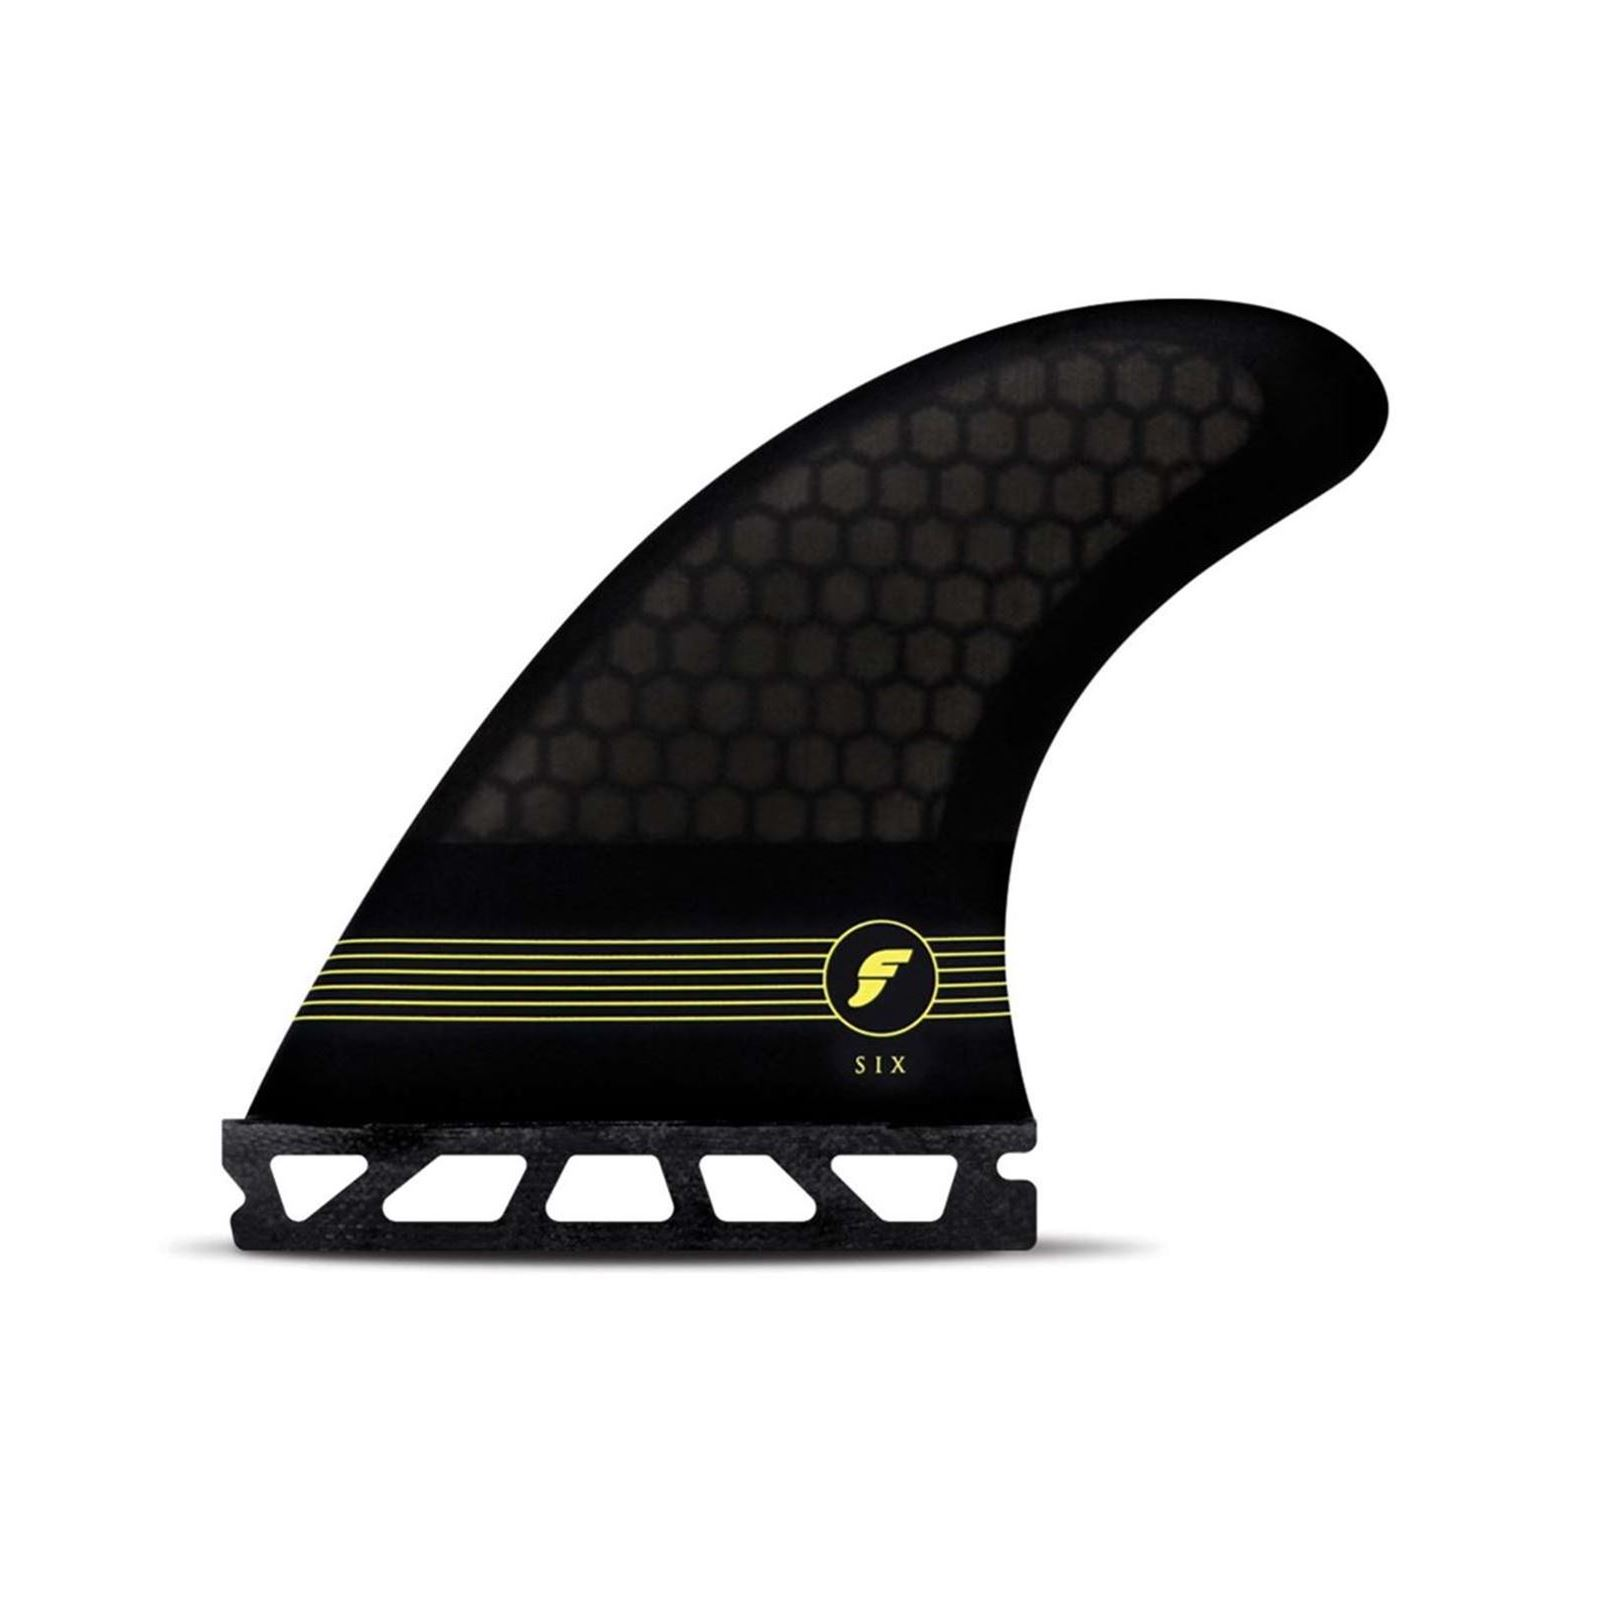 FUTURES Thruster Fin Set F6 Honeycomb